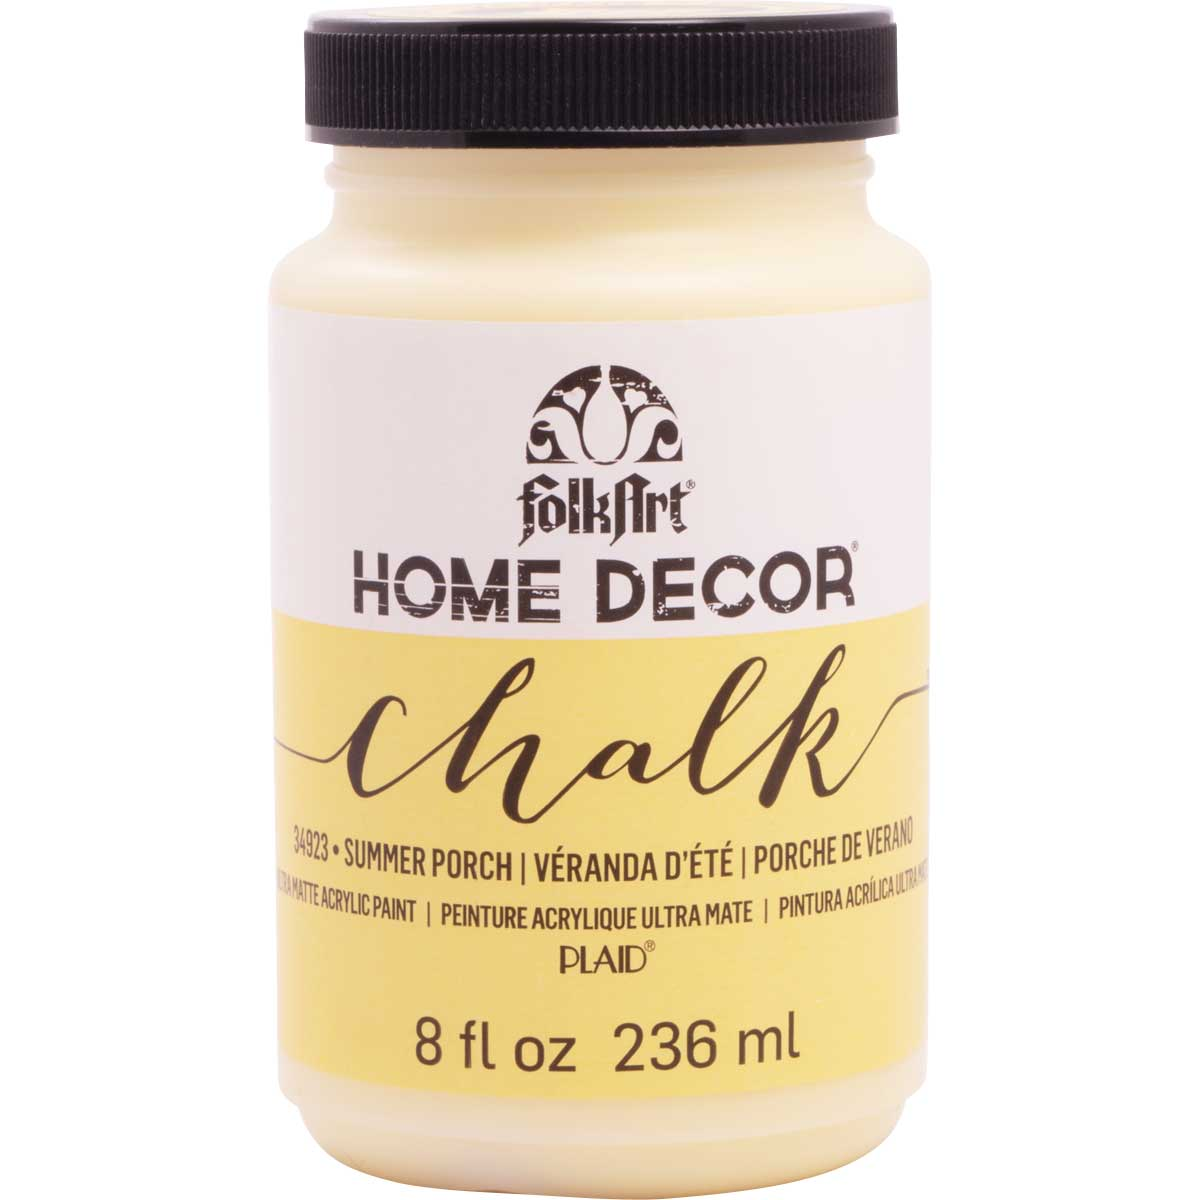 FolkArt ® Home Decor™ Chalk - Summer Porch, 8 oz.